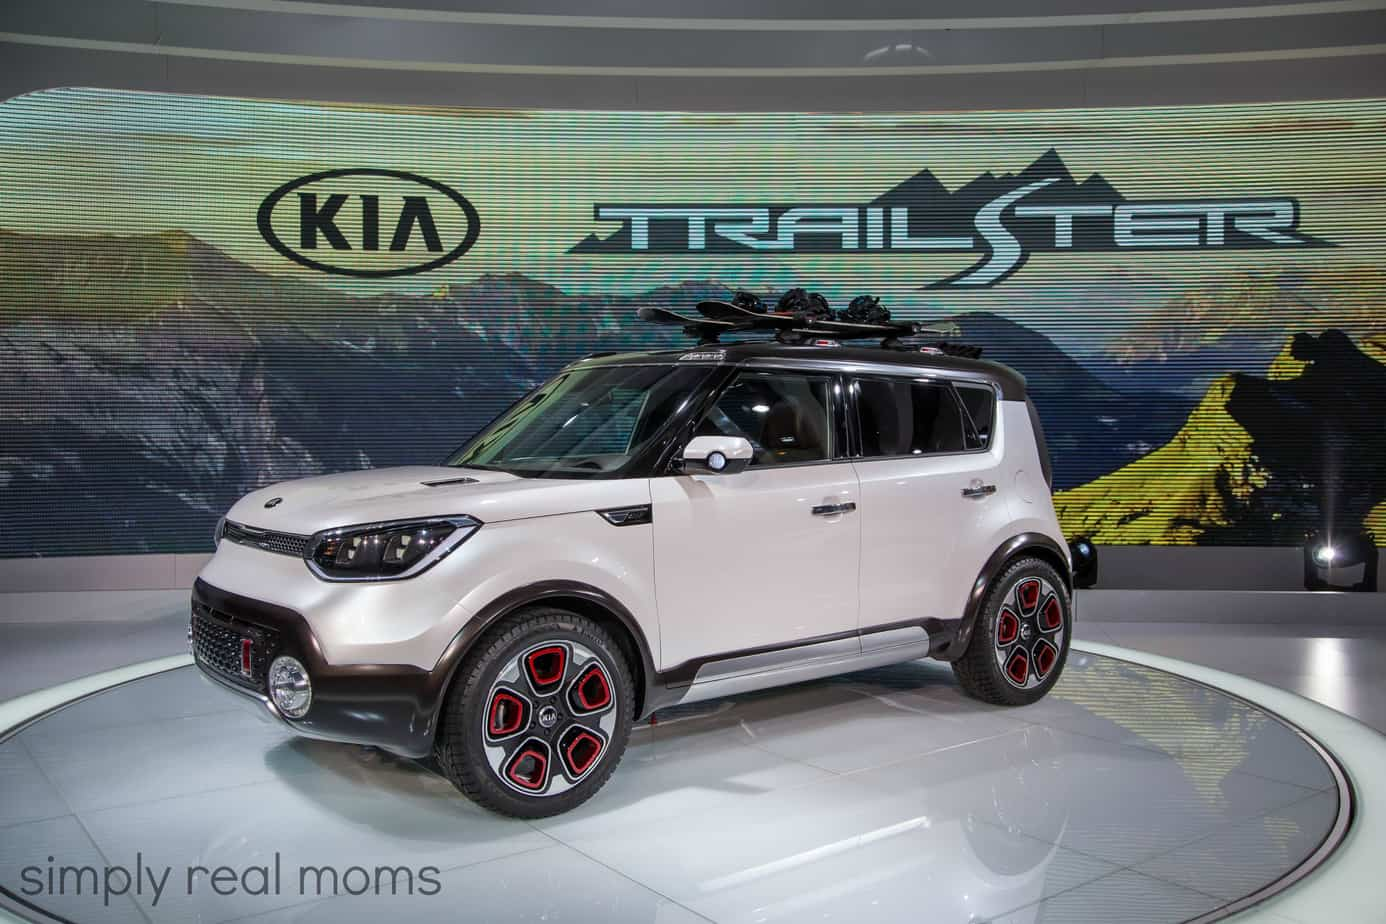 kia trail 39 ster because every concept car should have a story simply real moms. Black Bedroom Furniture Sets. Home Design Ideas